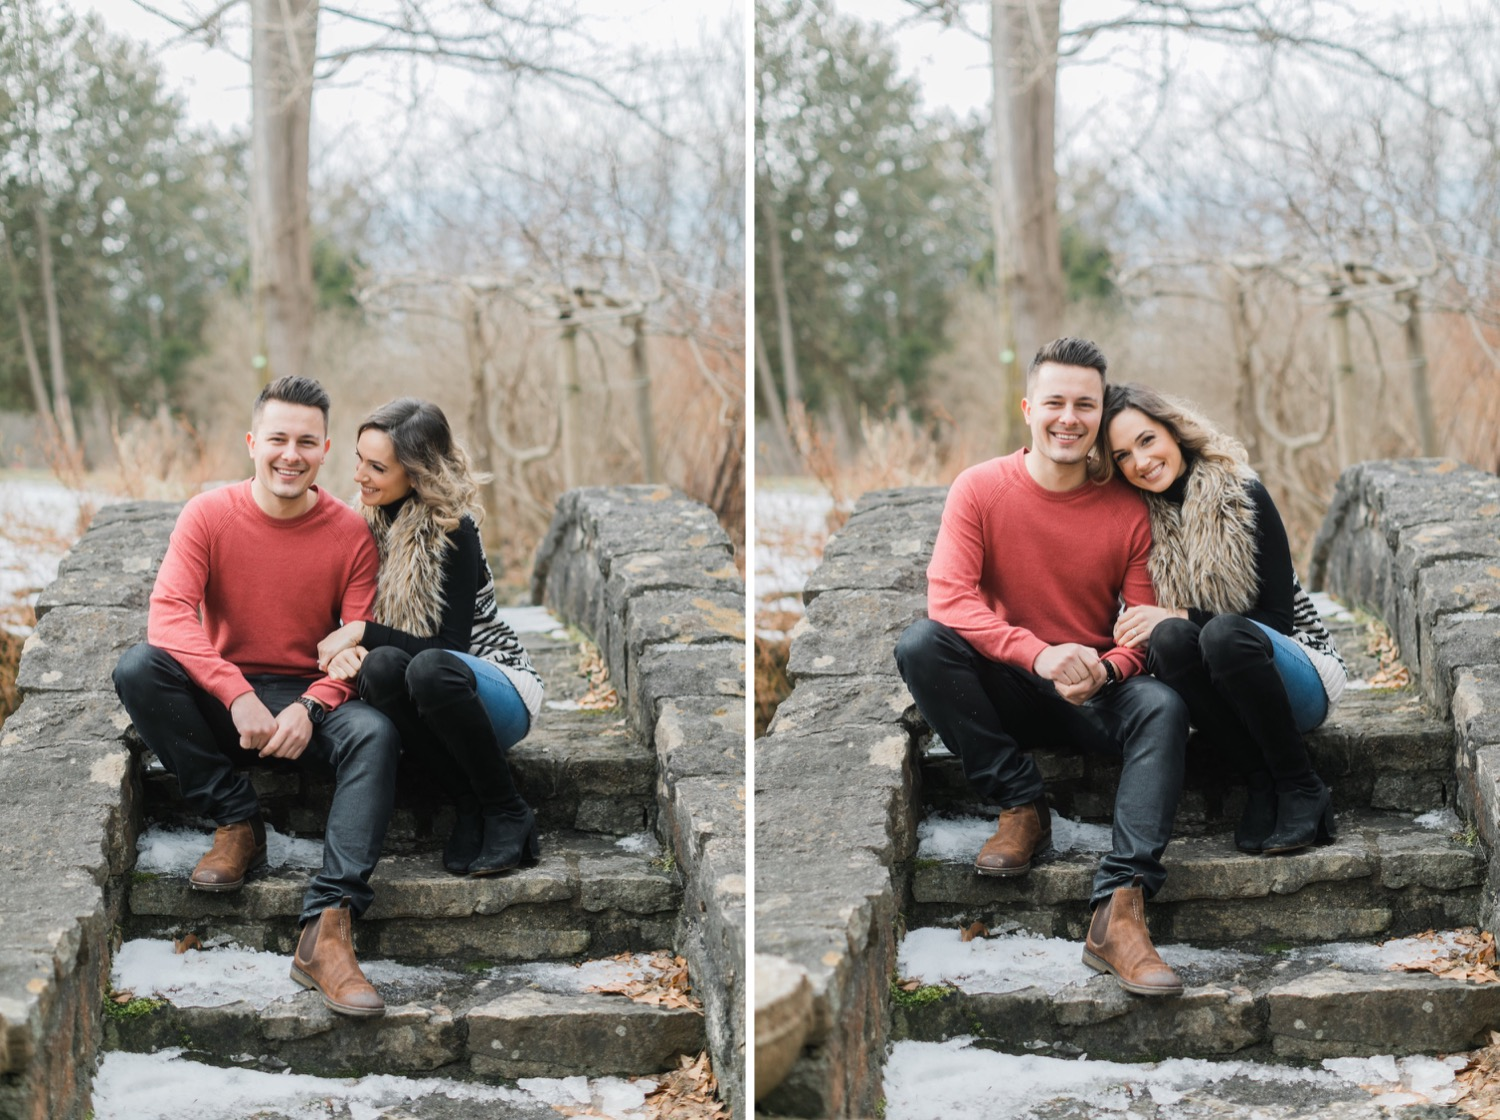 5_Libby___Michael___Engagement_Session___High_Res._Finals_0039_Libby___Michael___Engagement_Session___High_Res._Finals_0036.jpg